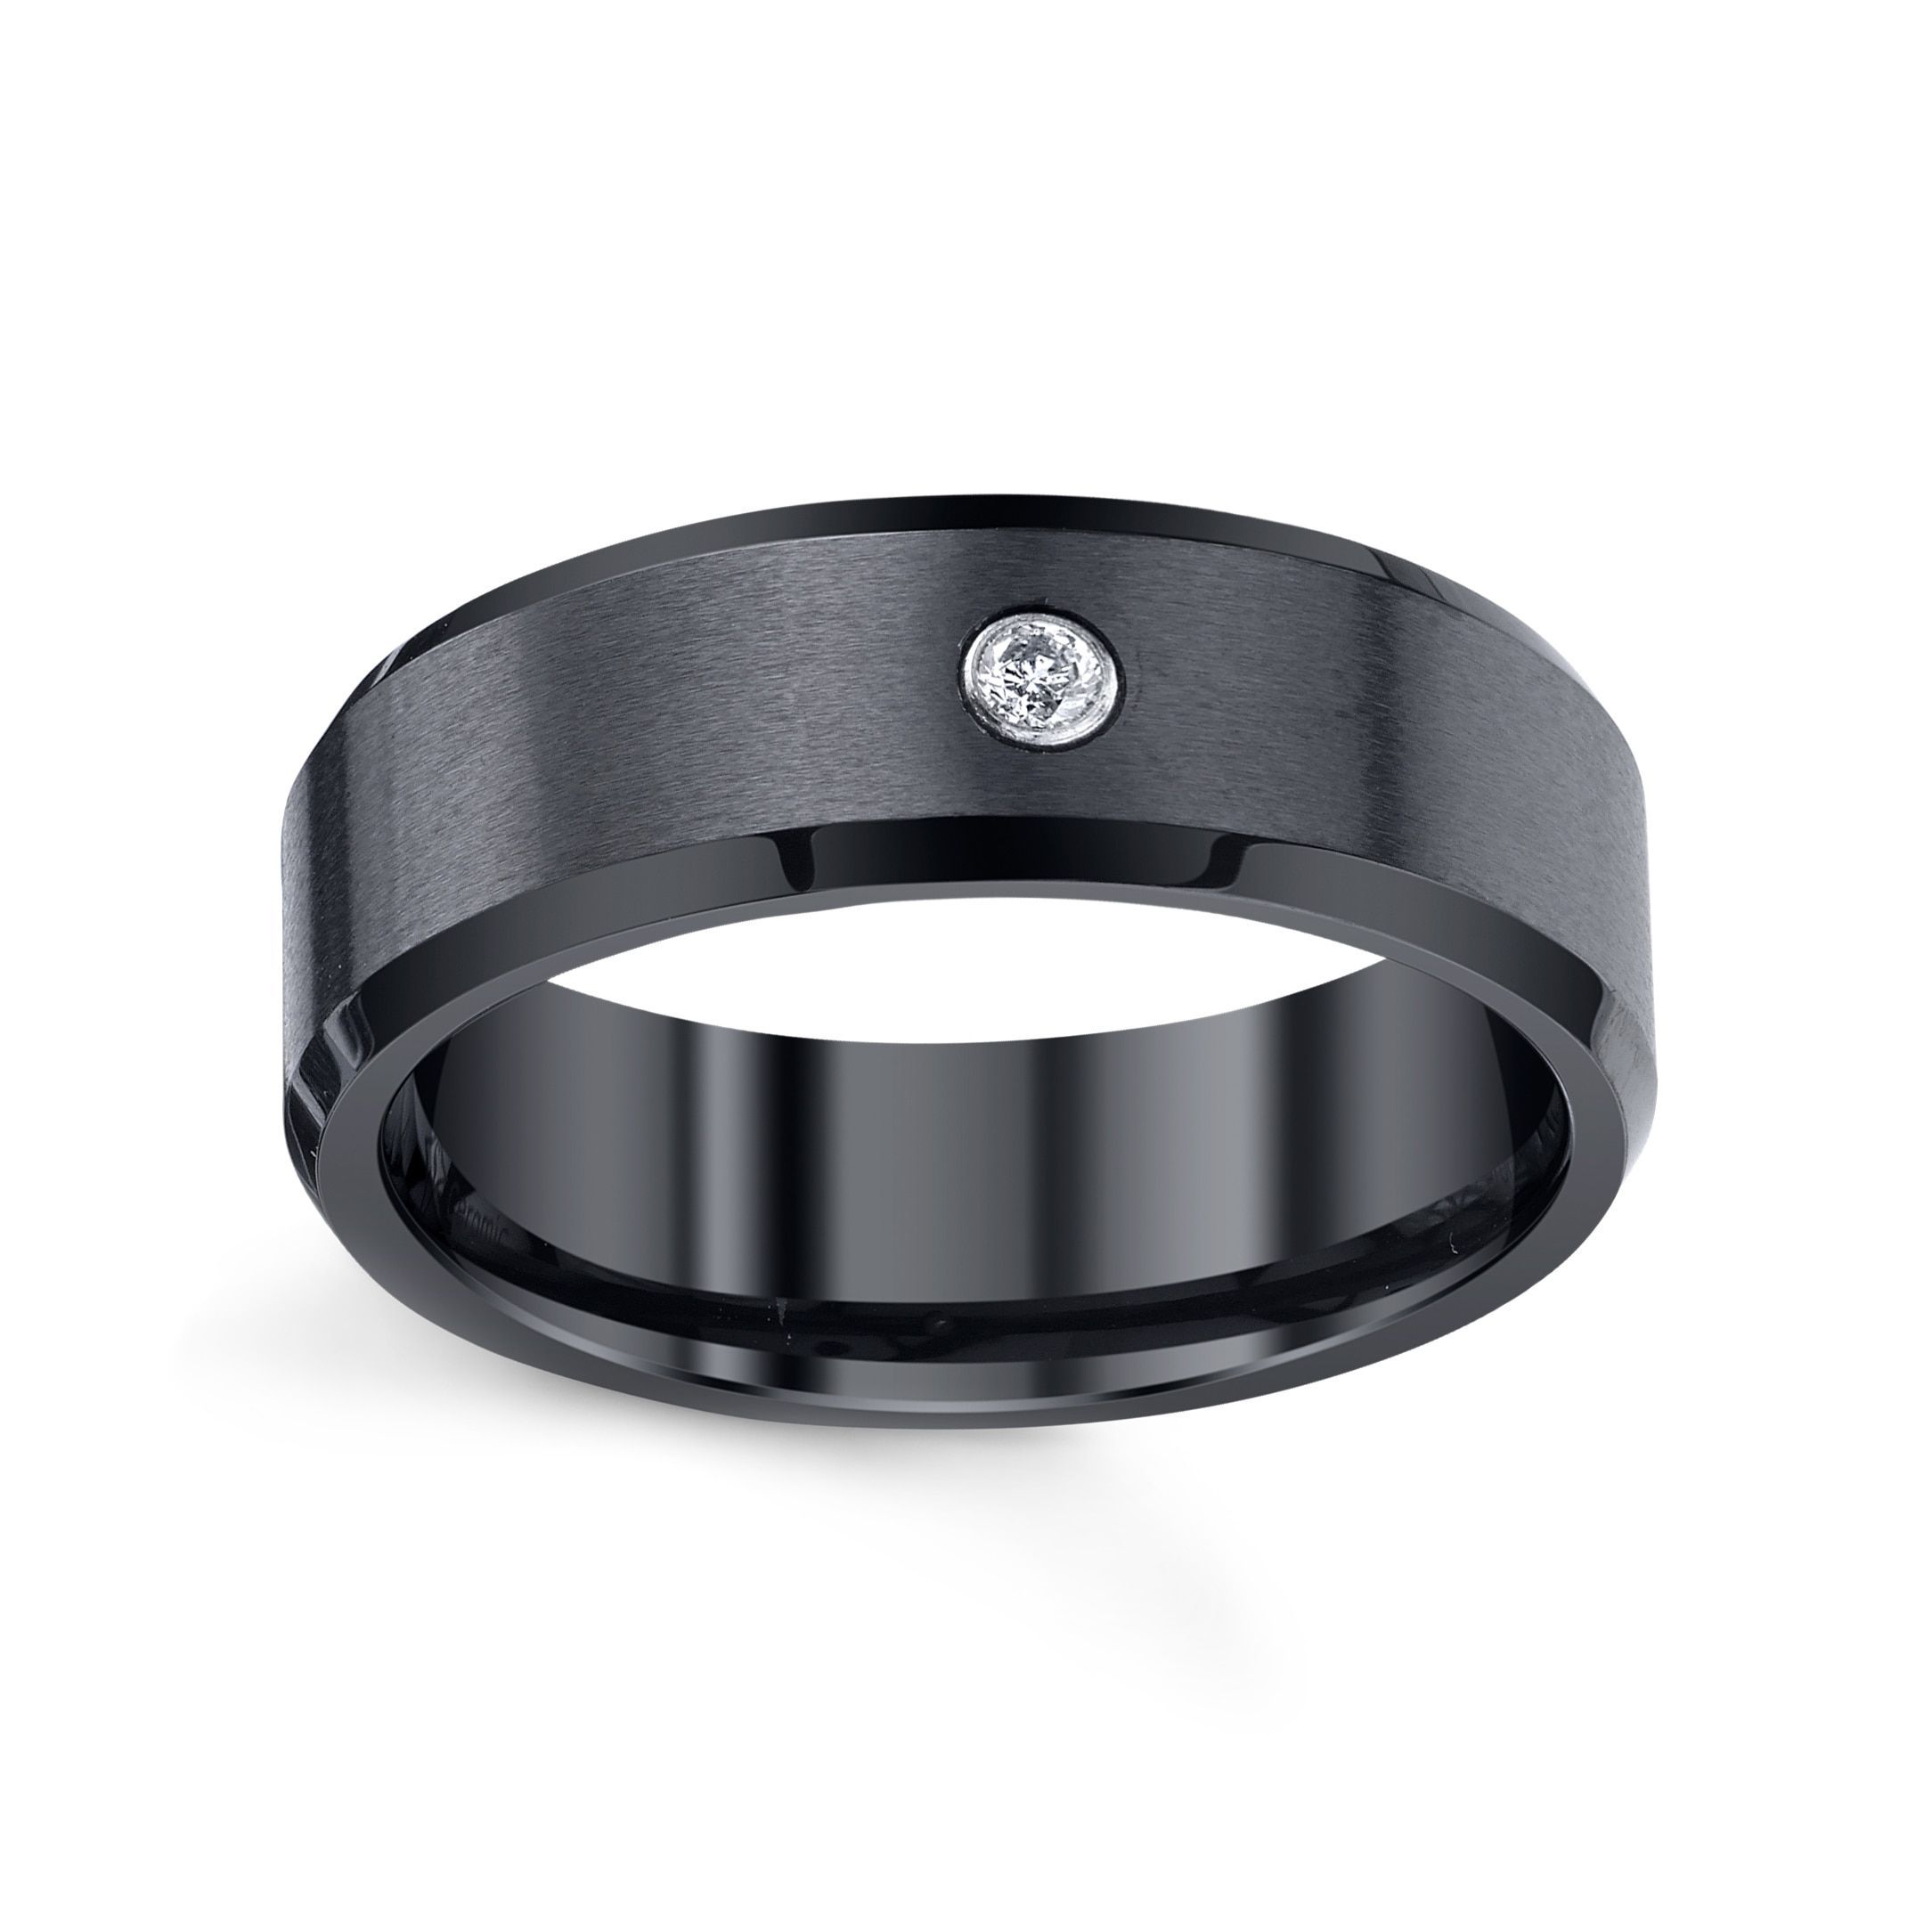 Men's Black Ceramic Satin and High Polished Band with